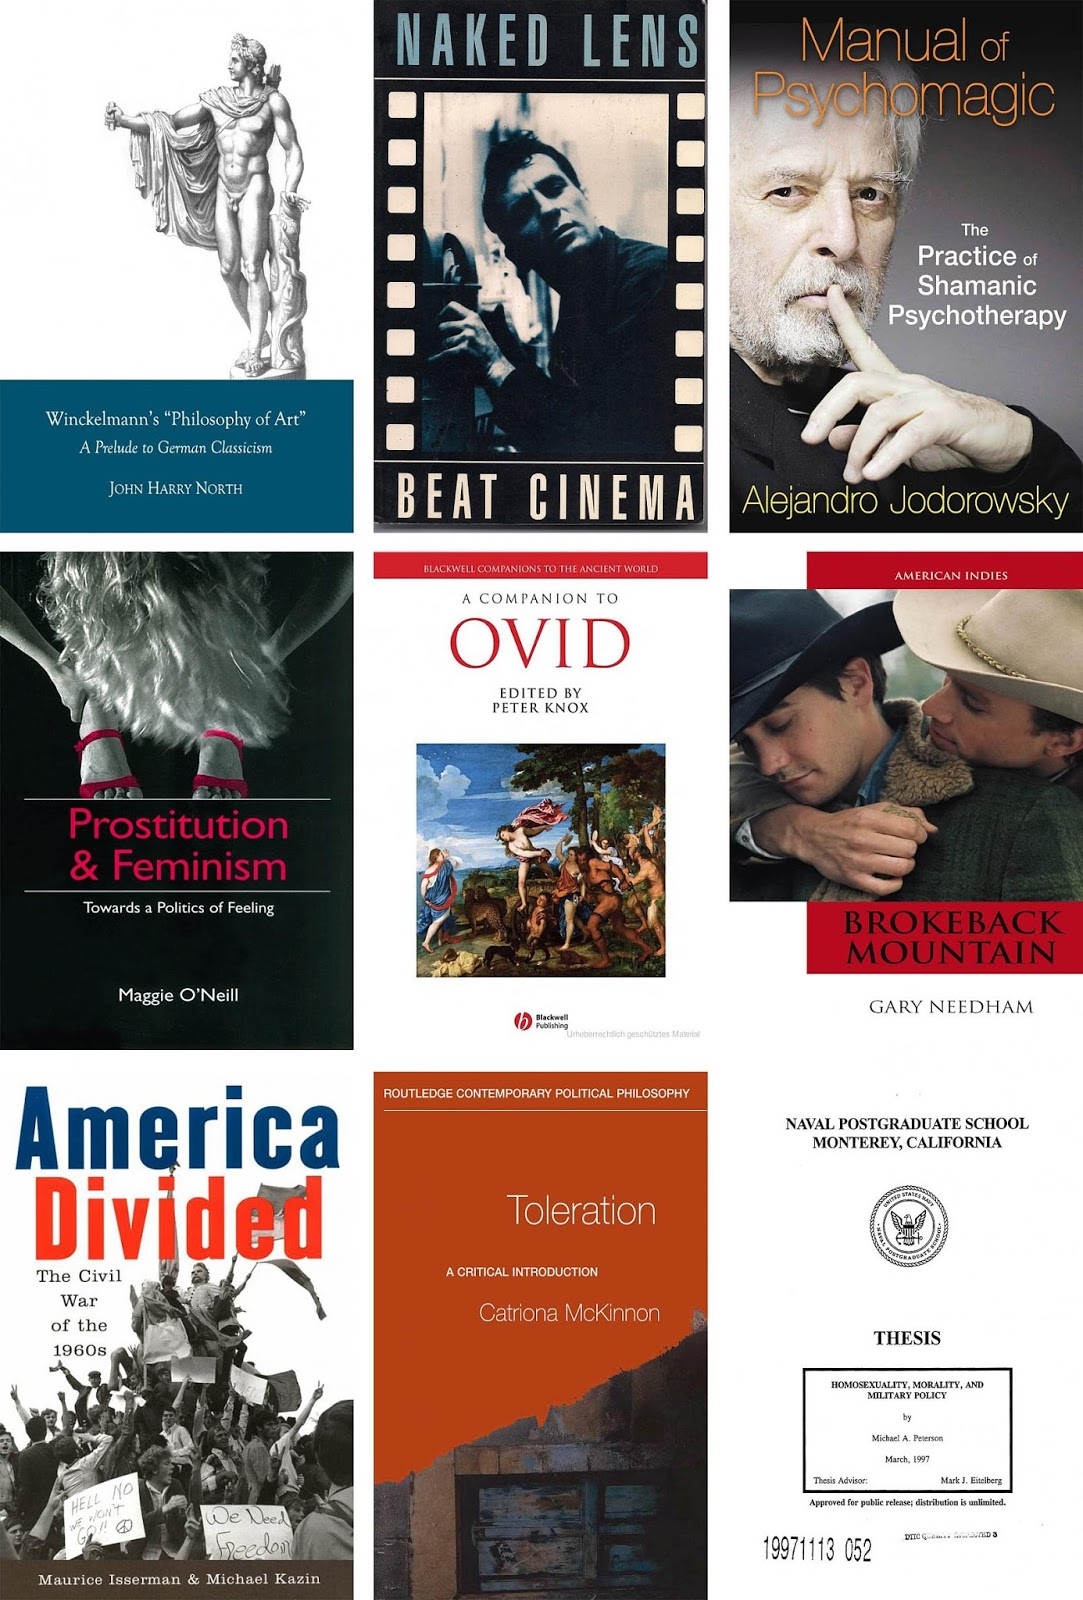 biblioteca lgttb oscar hermes villordo diciembre  petrzela natalia mehlman classroom wars language sex and the making of modern political culture pindar complete odes the